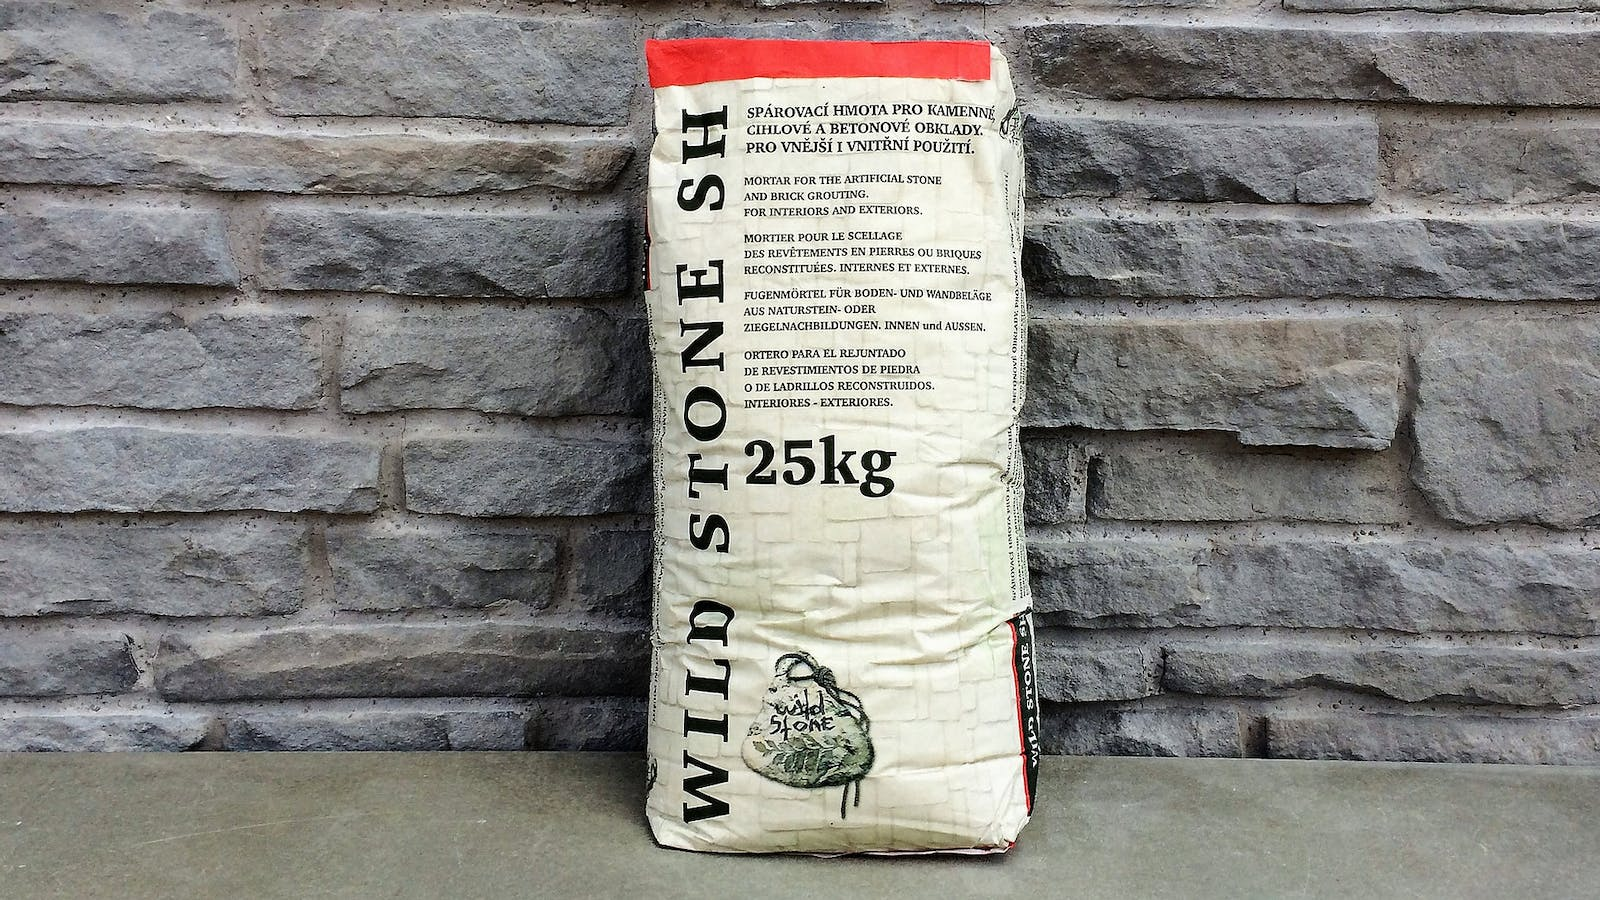 Wild Stone SH Mortar and Grout for interior or exterior use